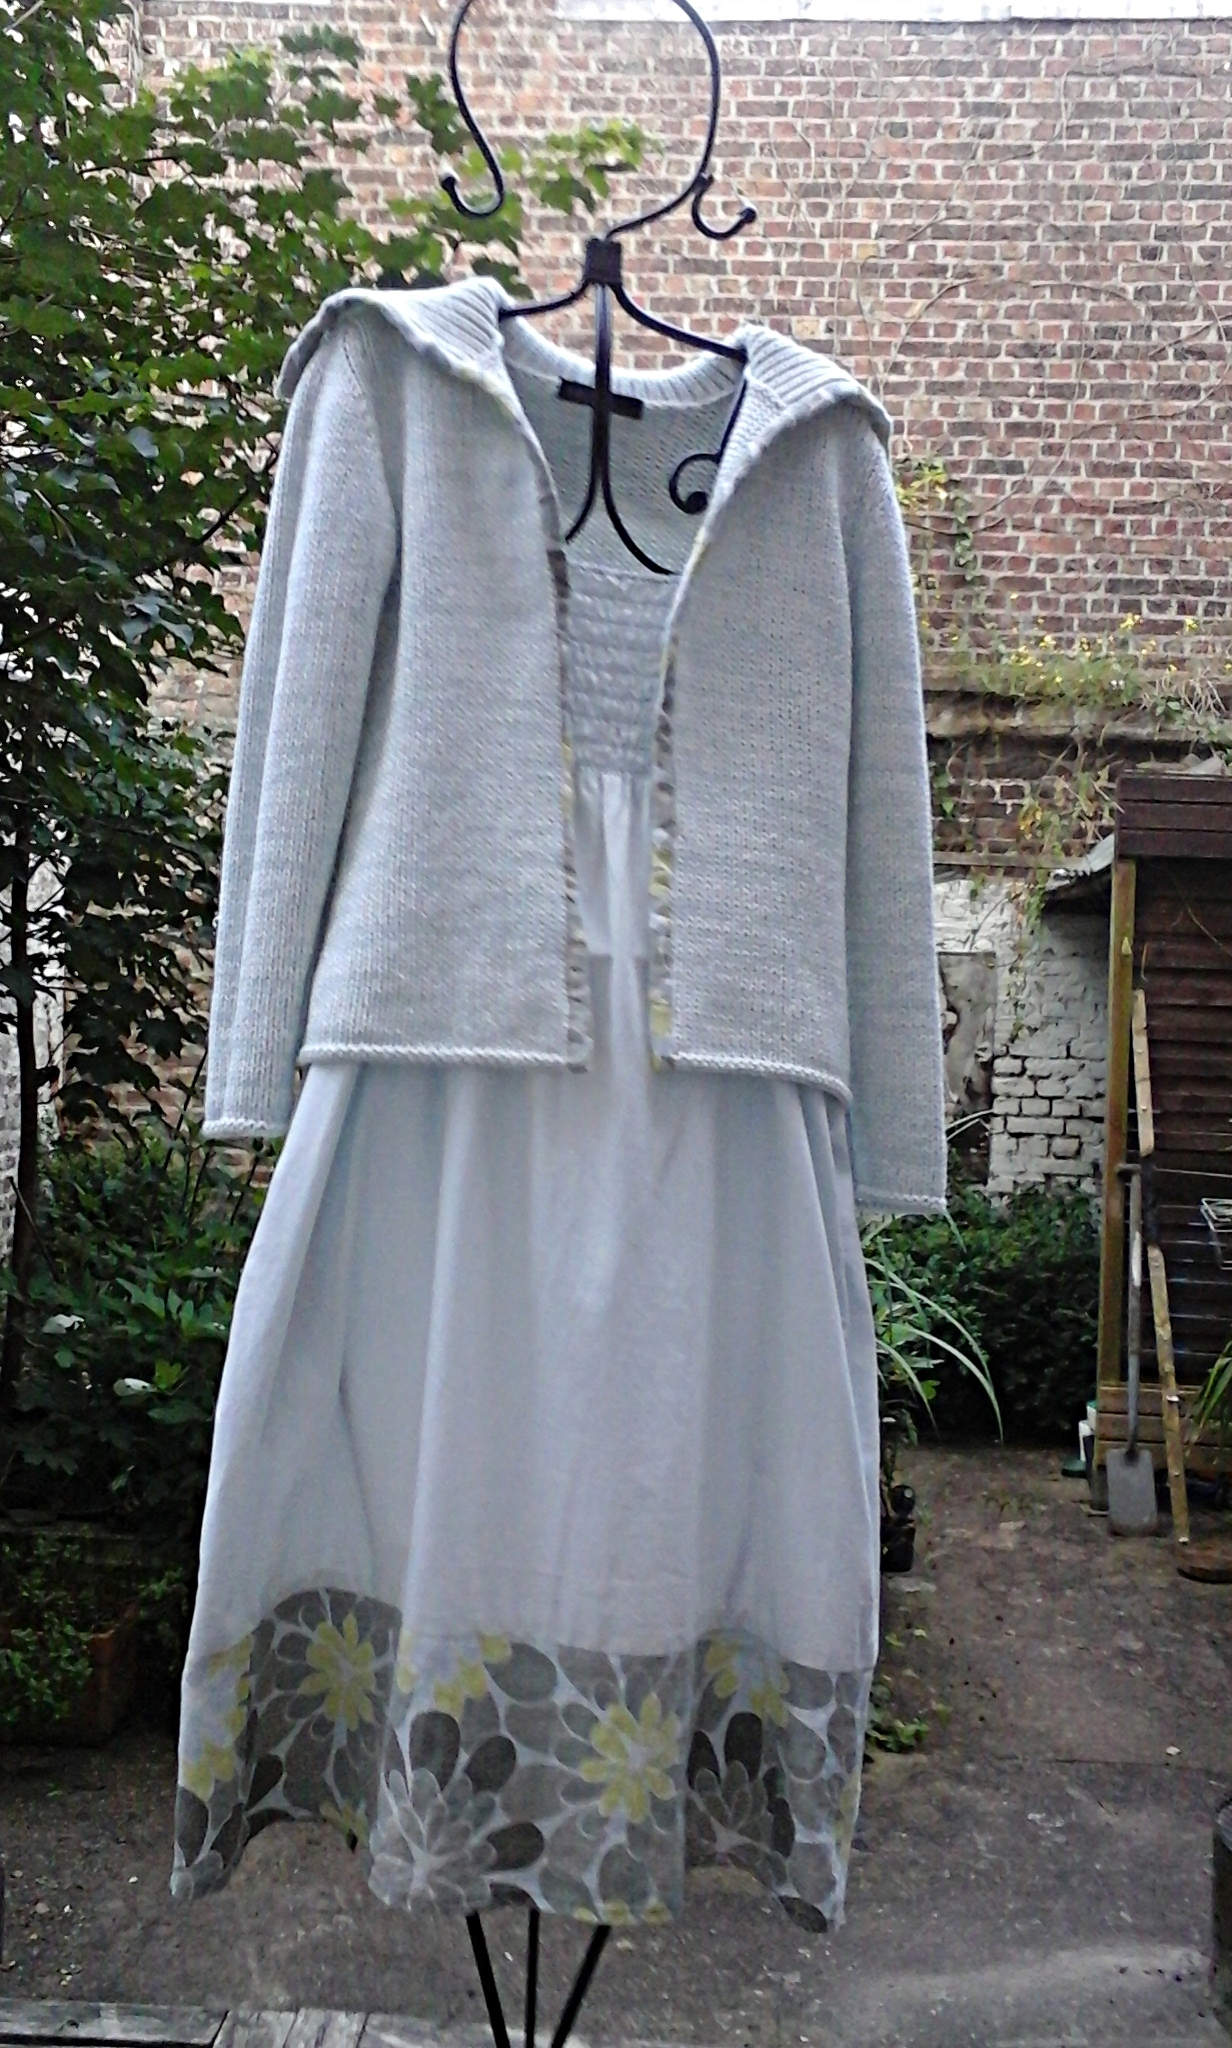 longing for length in summer, sold, designed and made by Beate Gernhardt